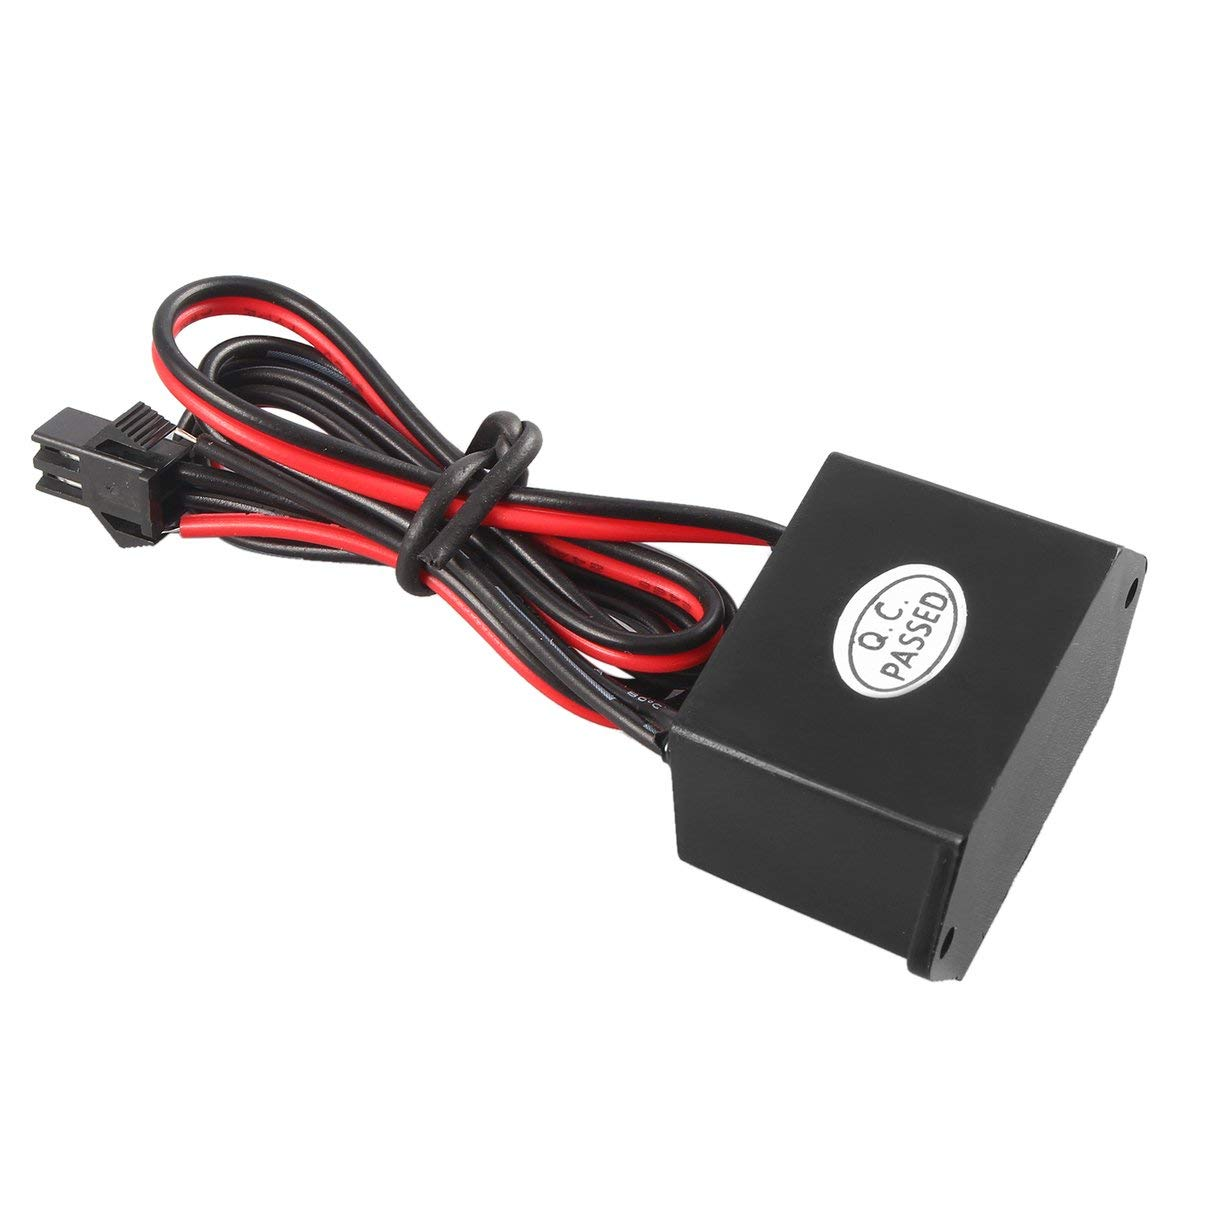 Detectoy 12v Dc To 120v Ac Inverter For El Lamp Wire Electroluminescent 1pcs